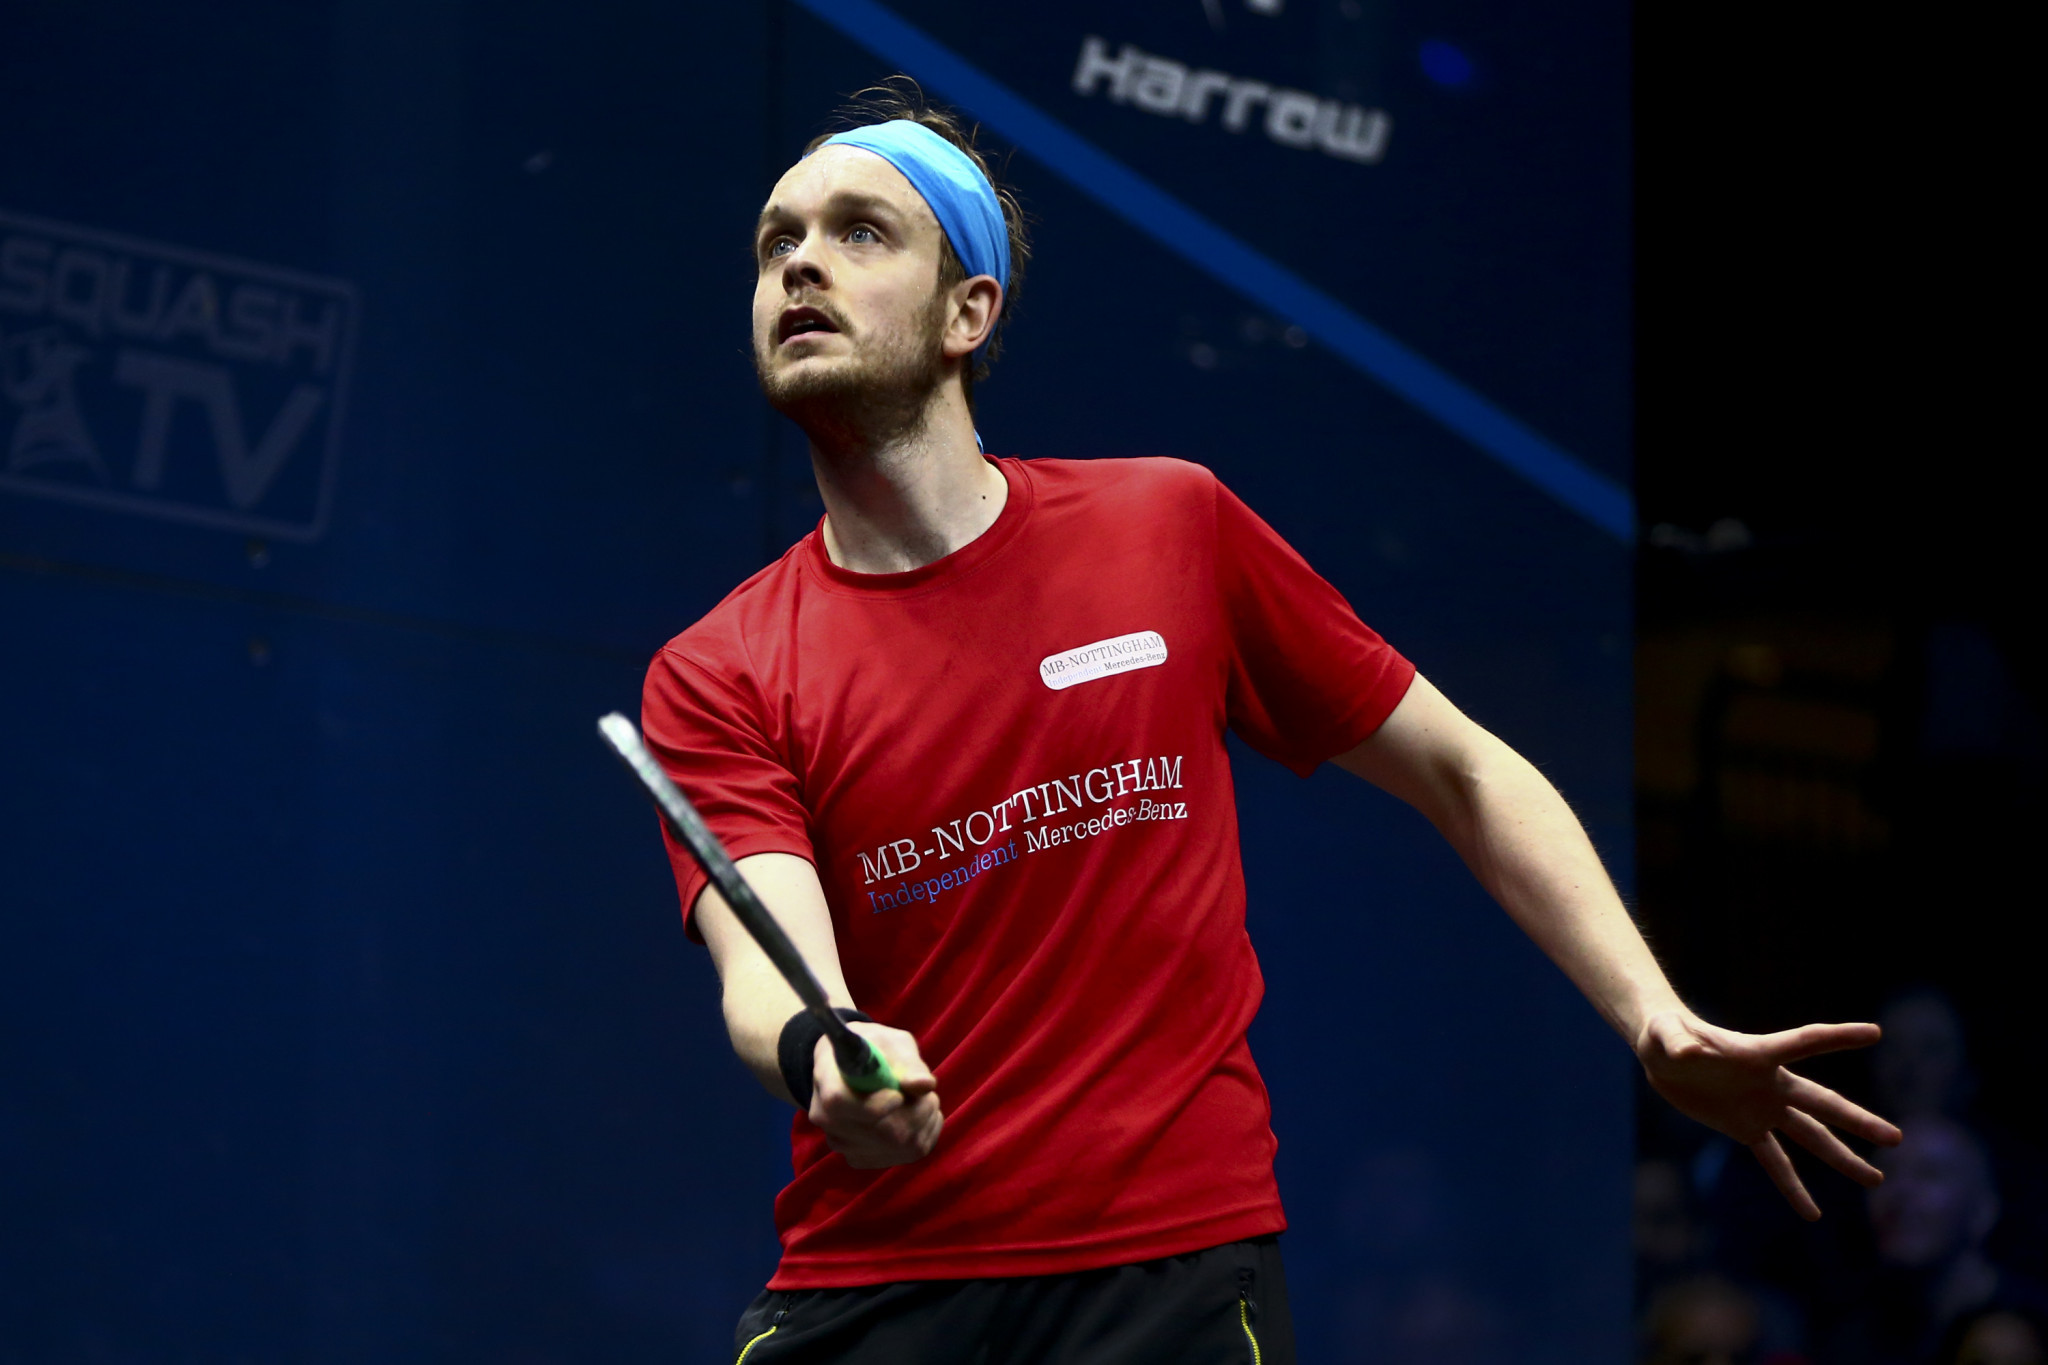 Willstrop rolls back the years to beat Marwan ElShorbagy at US Open